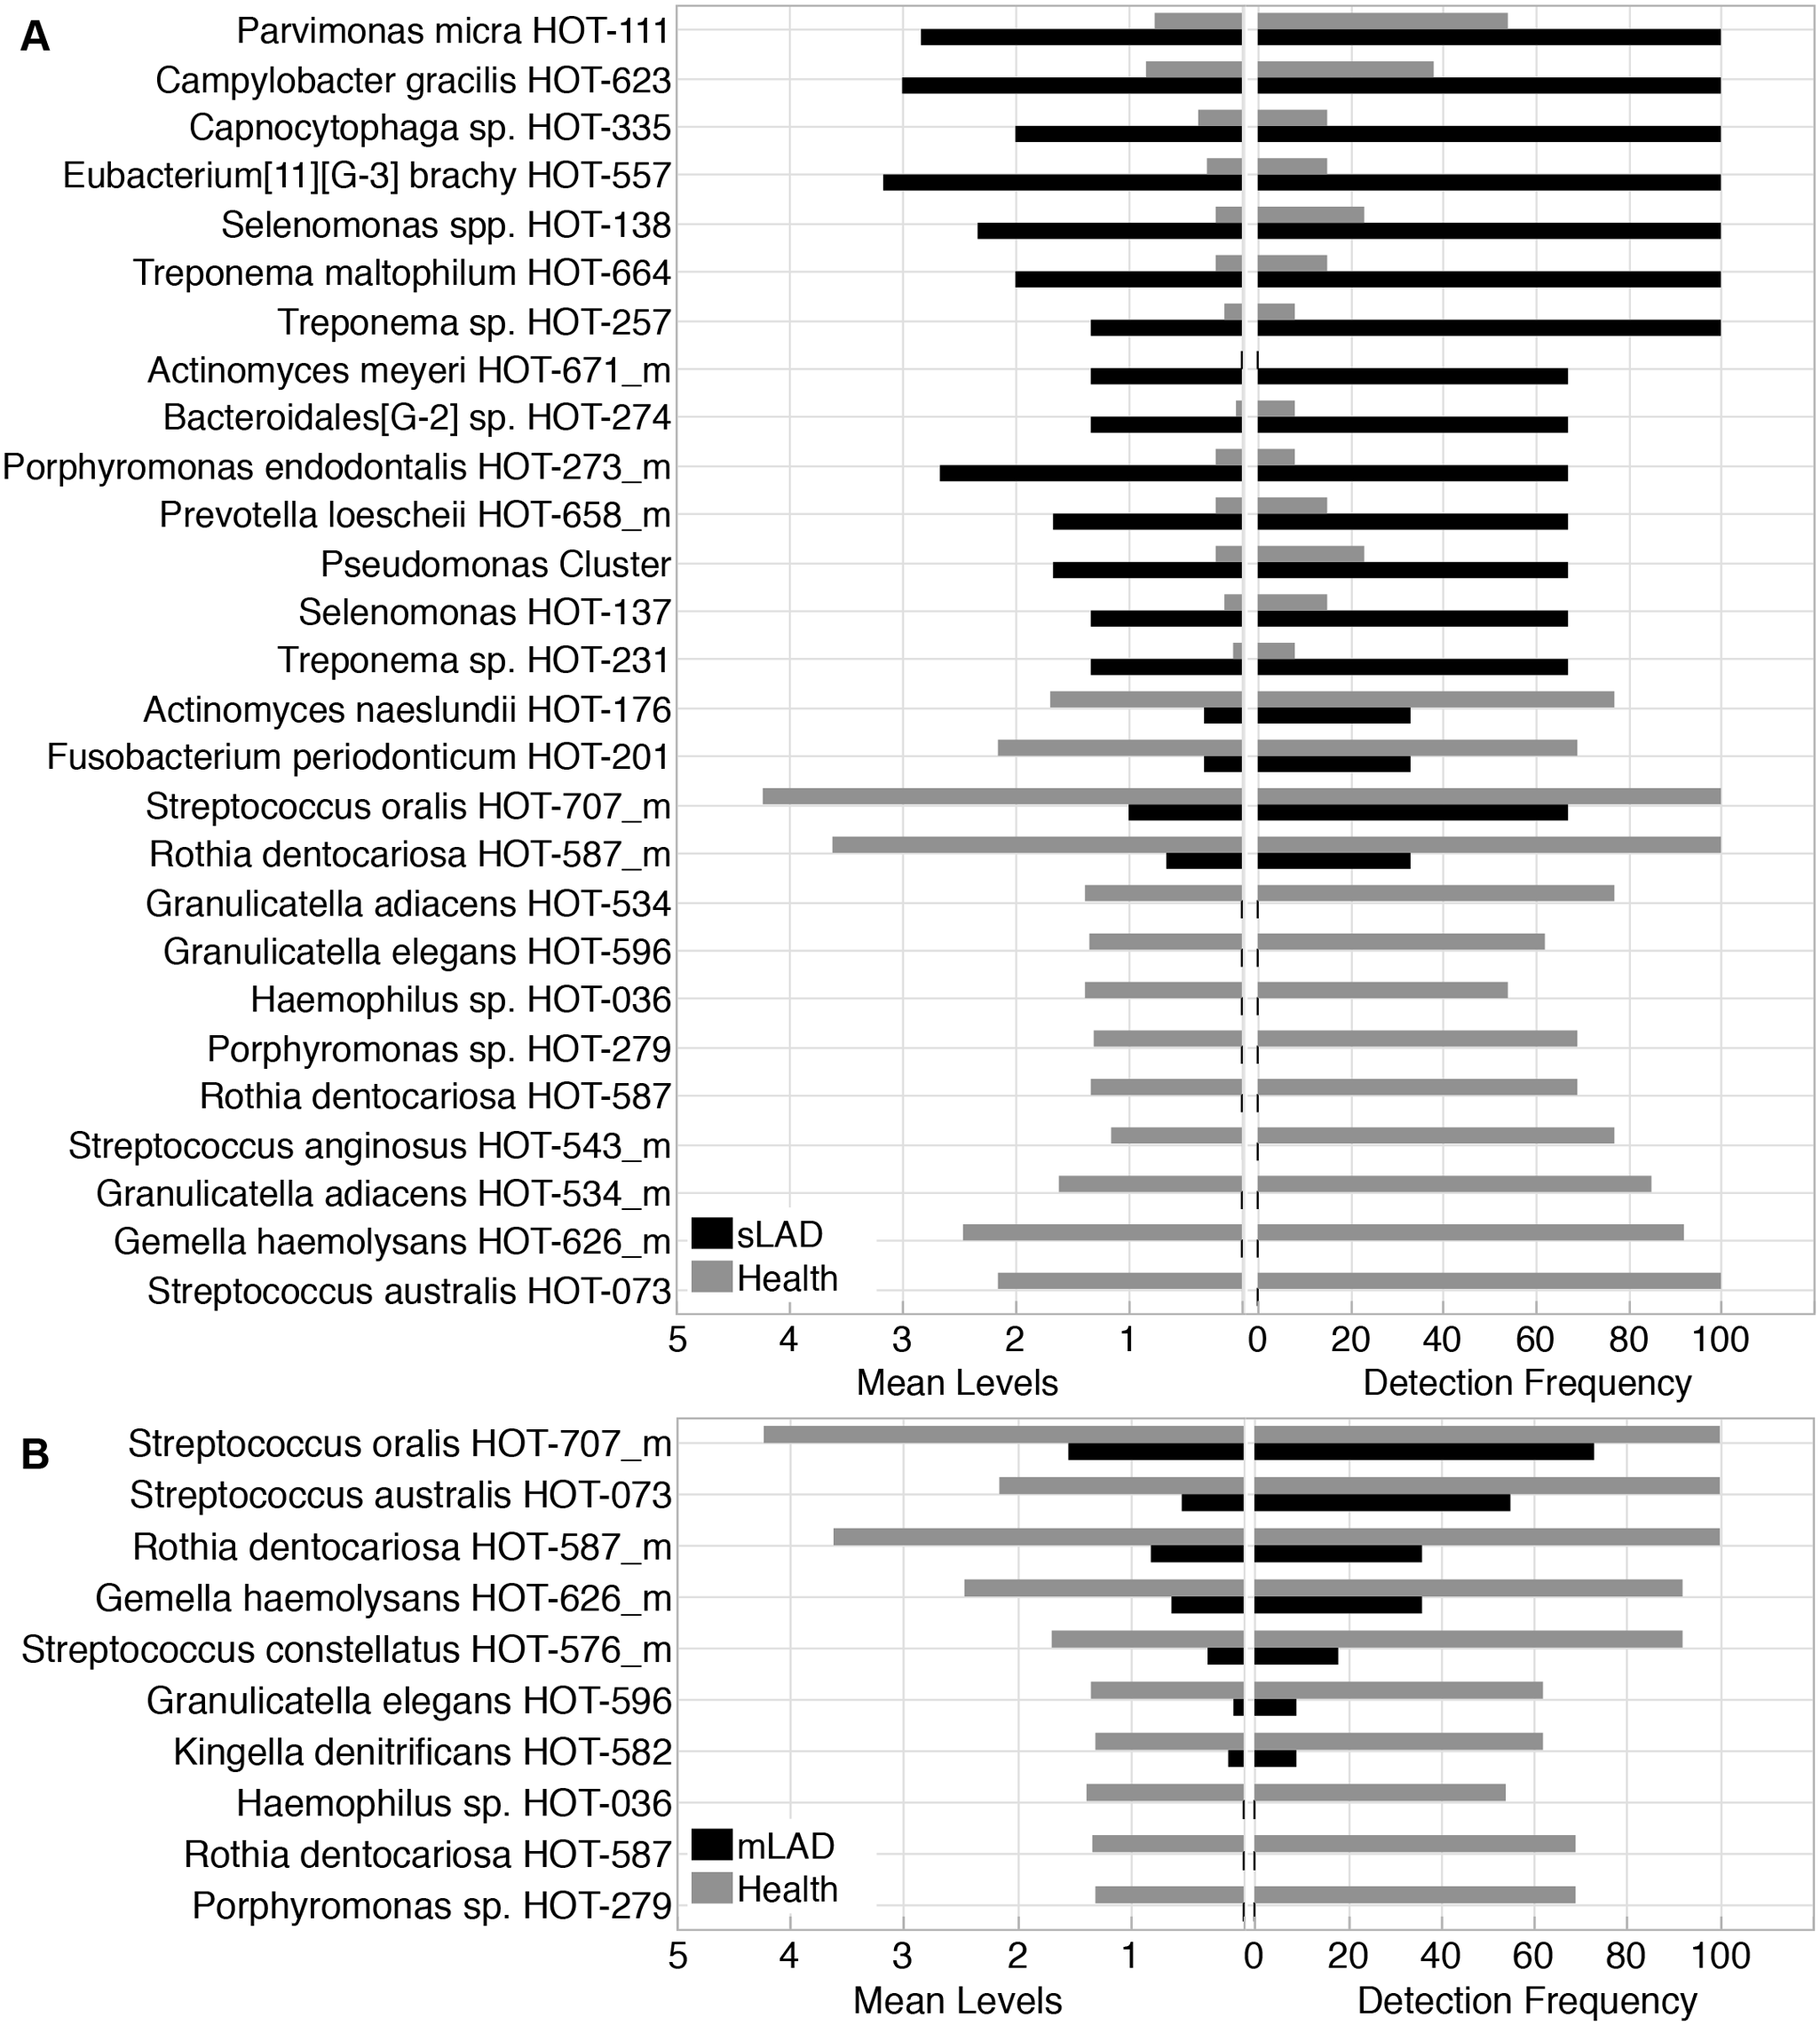 Bacterial taxa differentially represented in LAD and health.